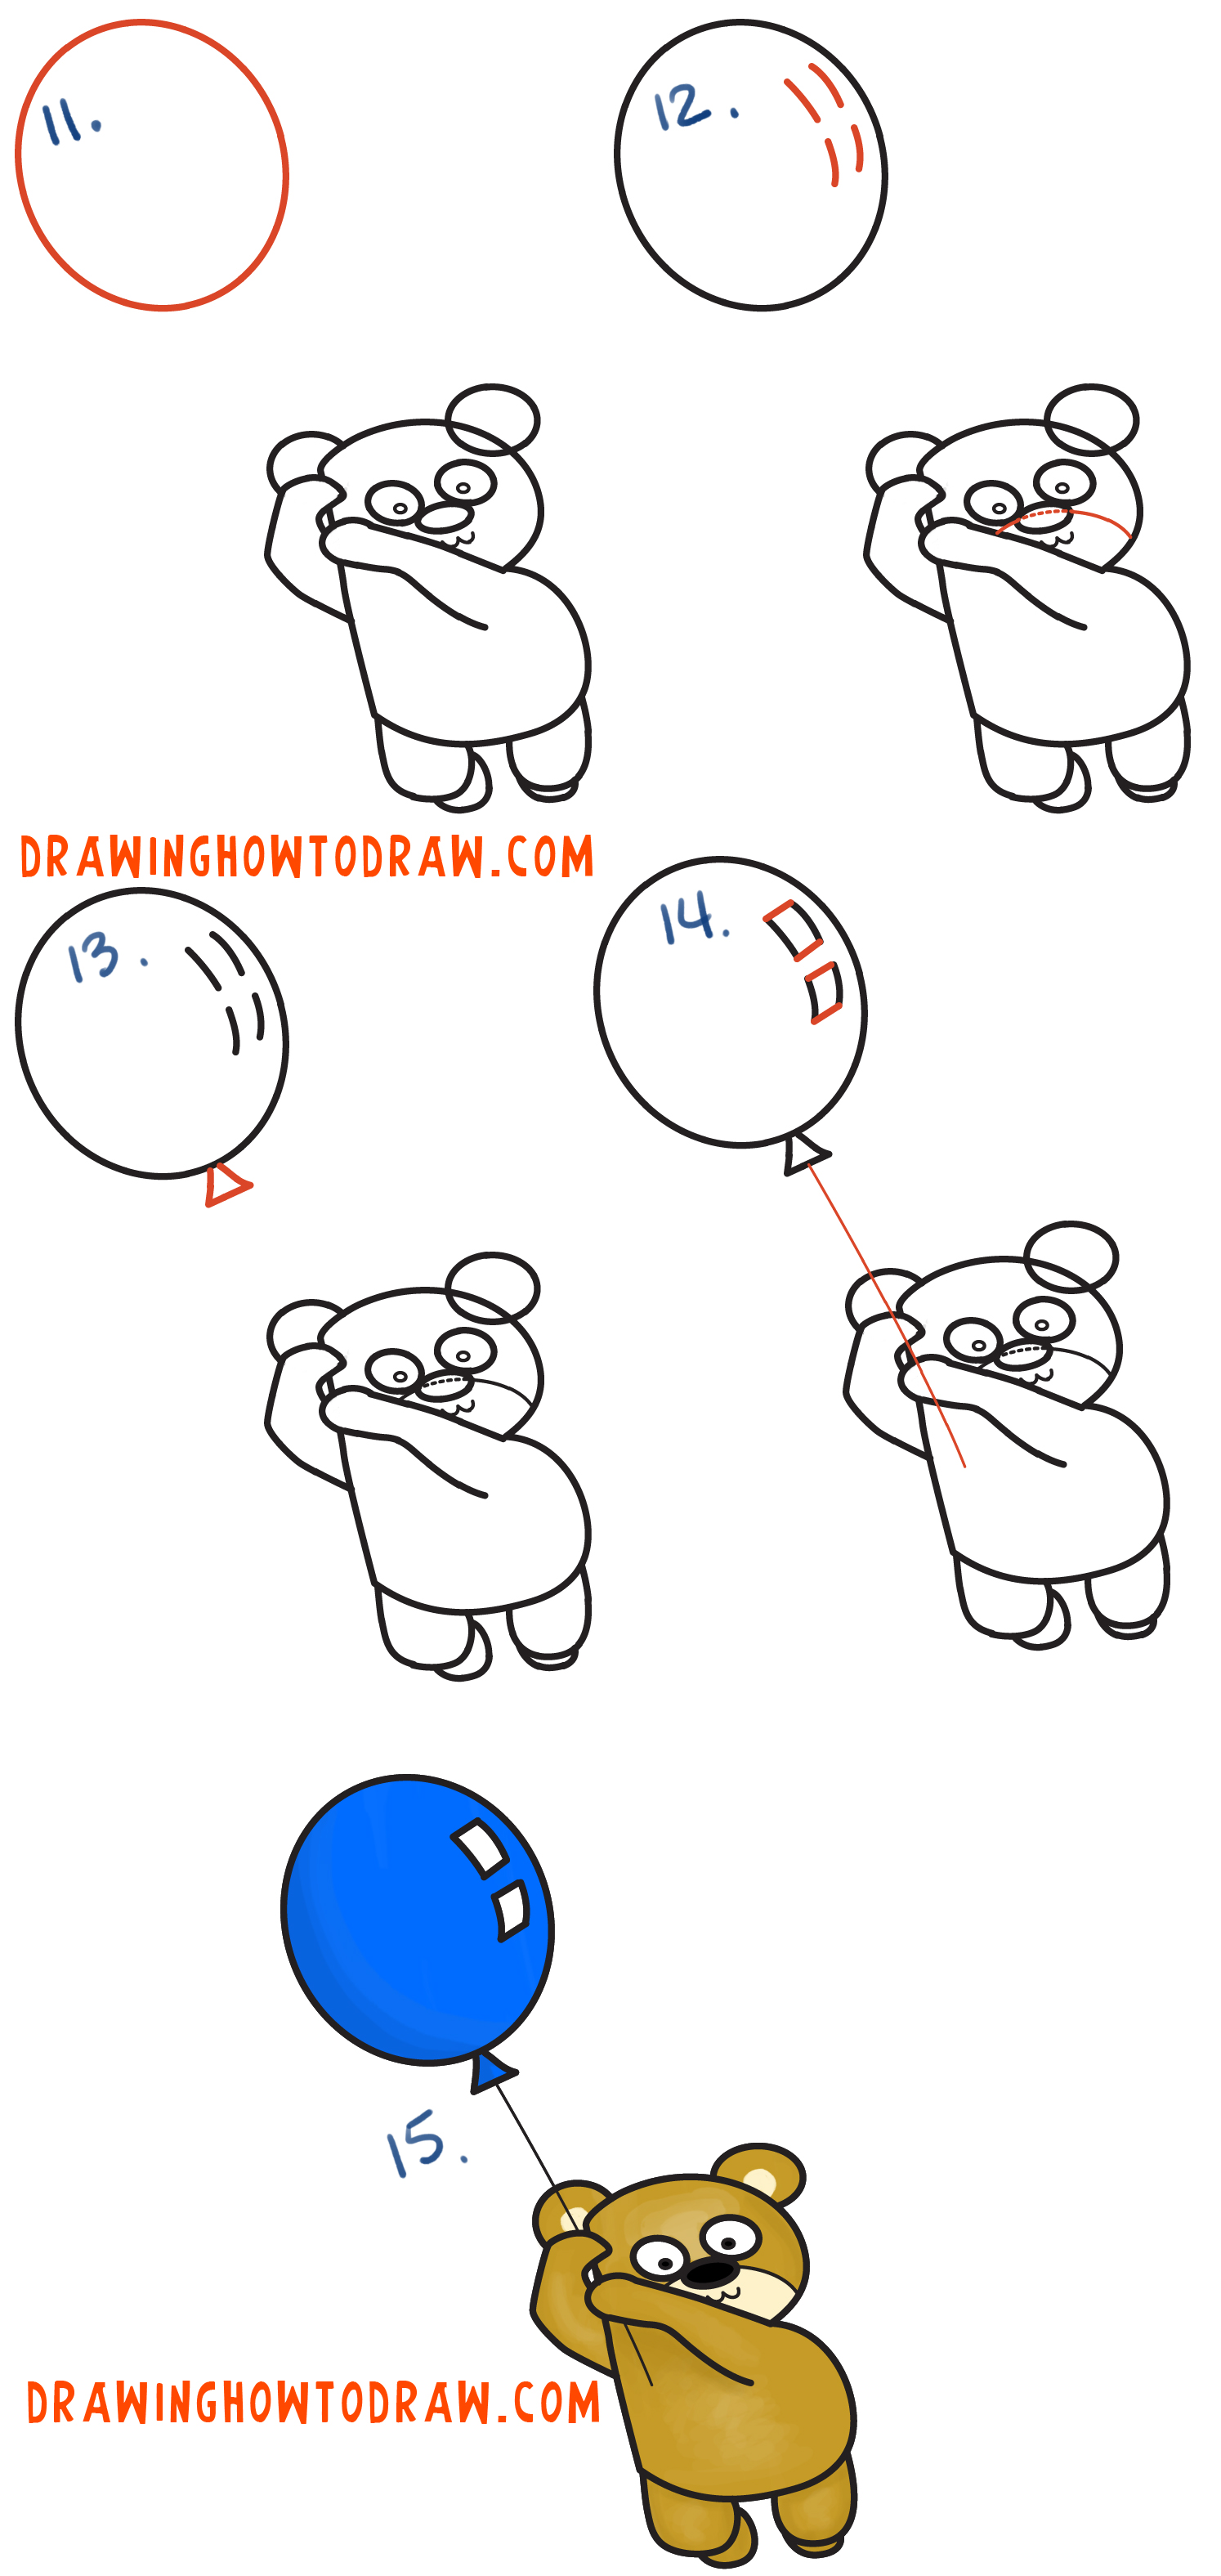 Learn How to Draw a Cartoon Bear Holding a Balloon Floating Up to the Sky from Letter B Simple Steps Drawing Lesson for Children